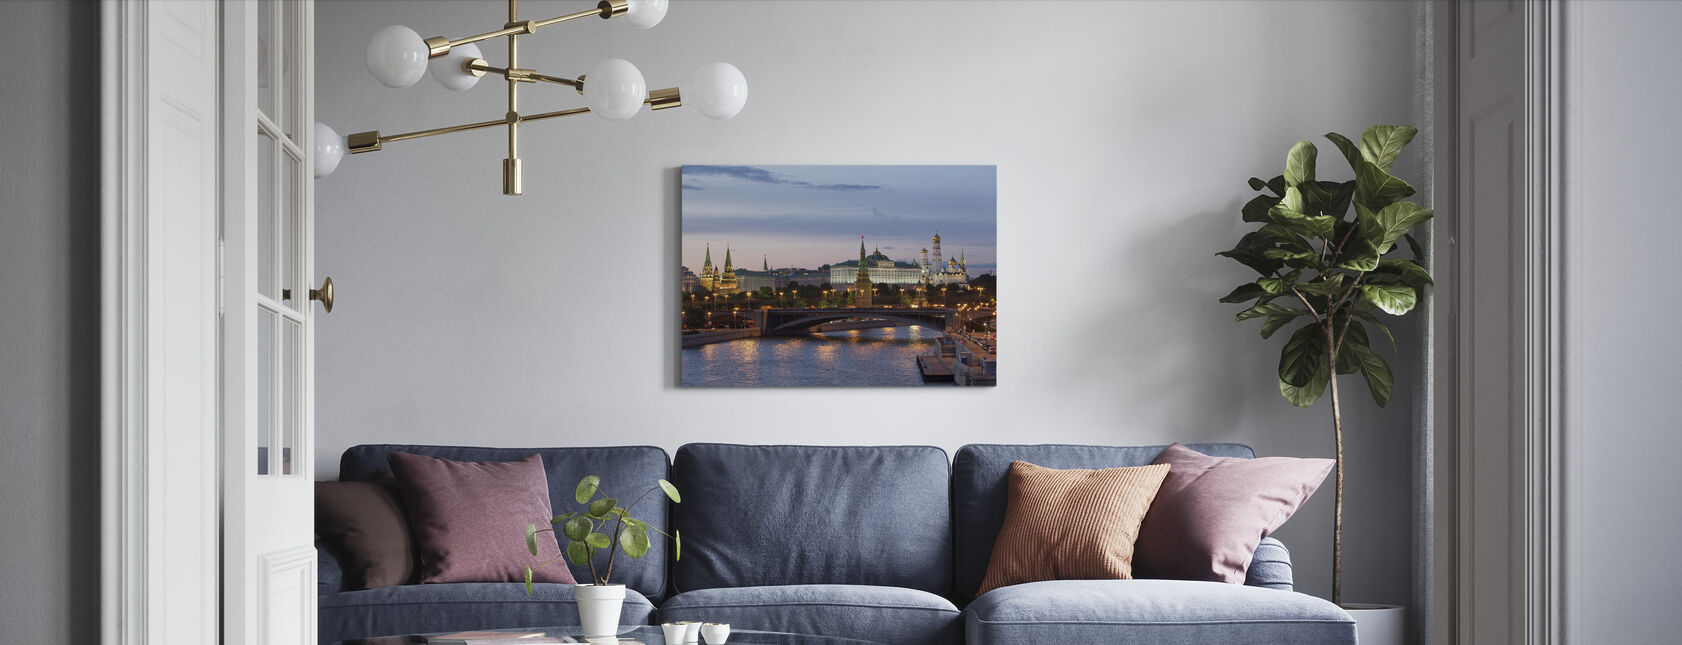 Heart of Moscow - Canvas print - Living Room